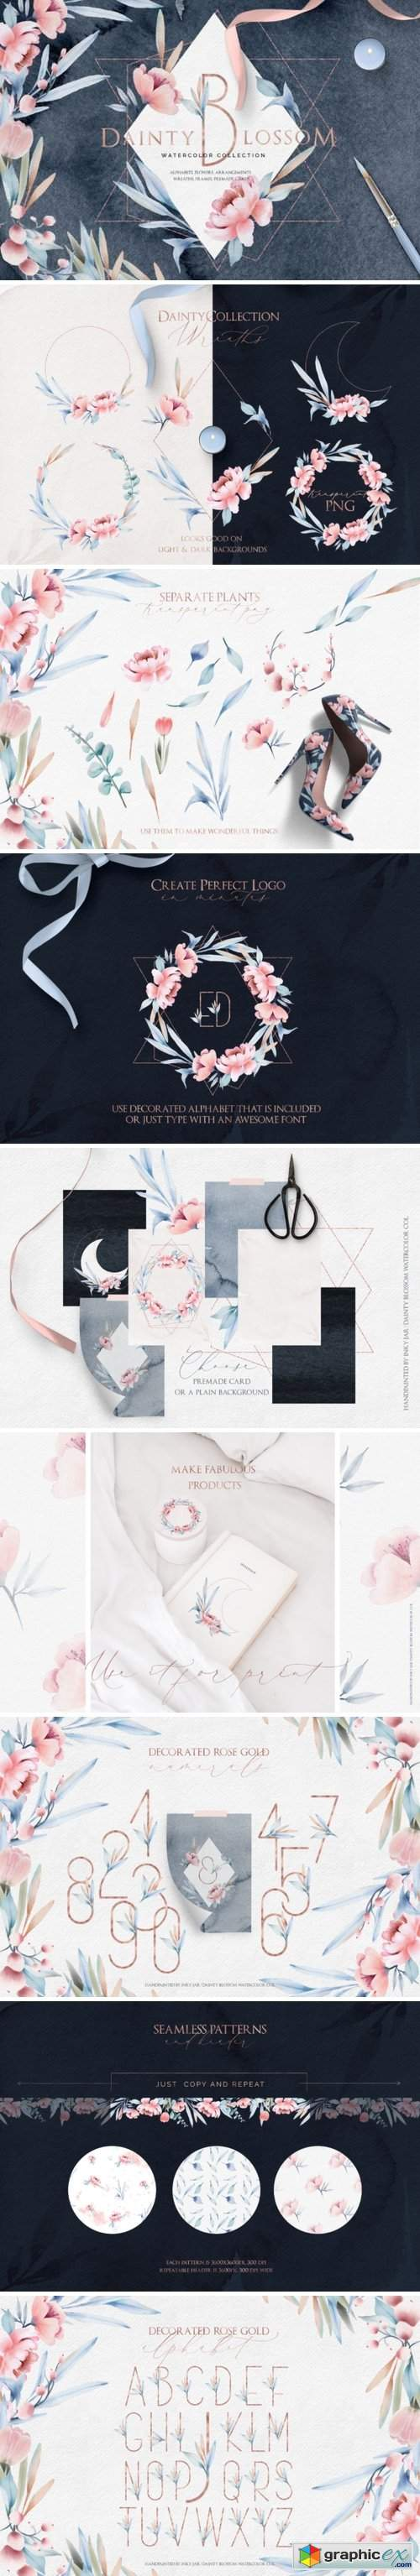 Fine Art Watercolor Collection | Dainty Blossom